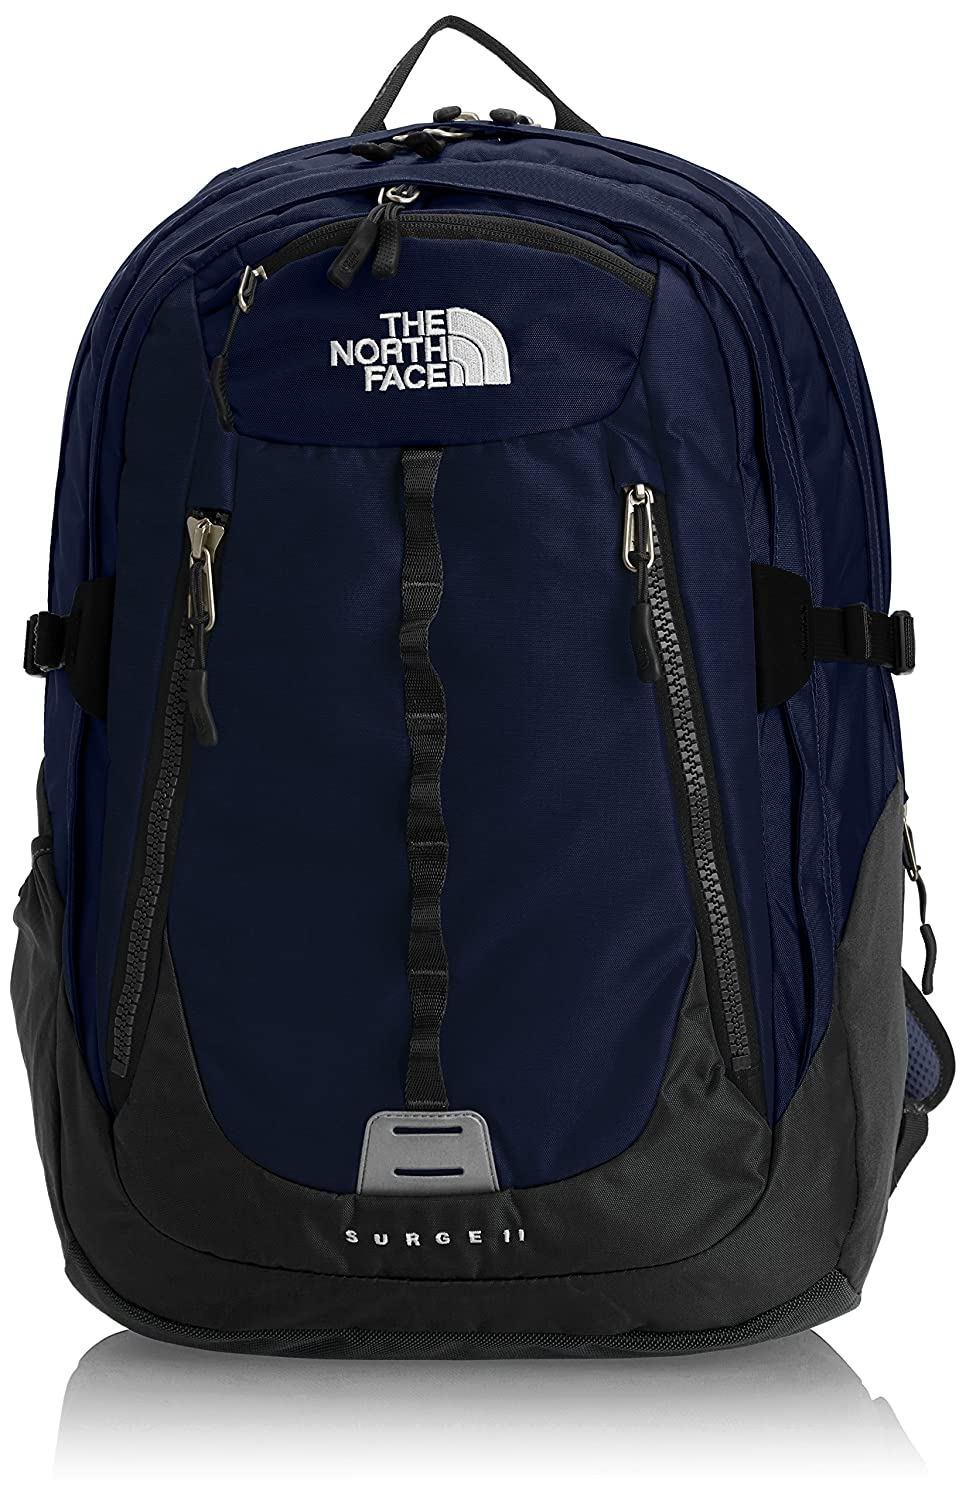 16bbc57df8 The North Face Surge Backpack Black- Fenix Toulouse Handball